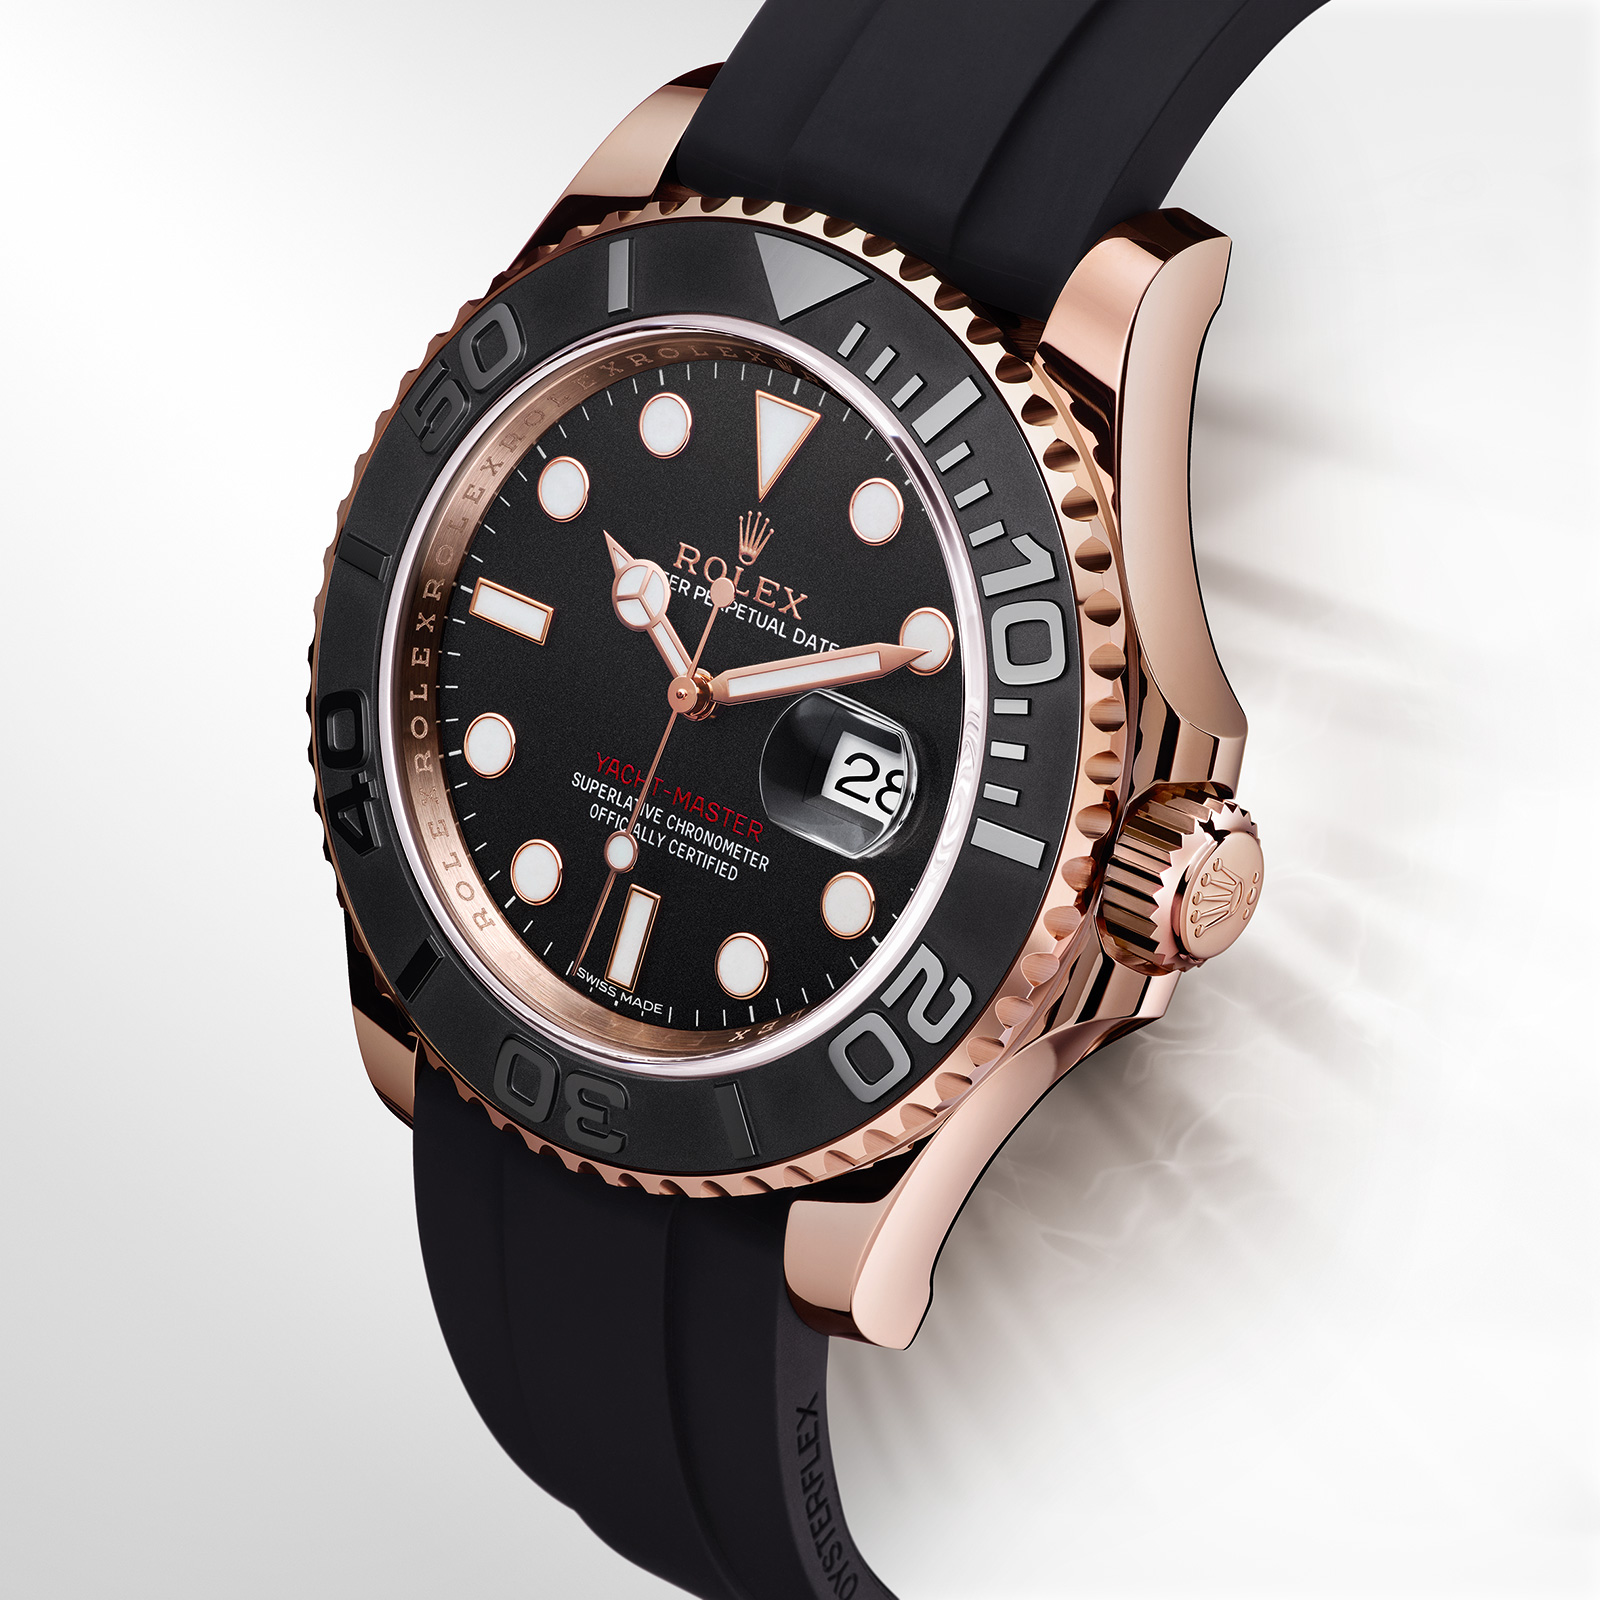 Rolex Yachtmaster 2 Rose Gold Price